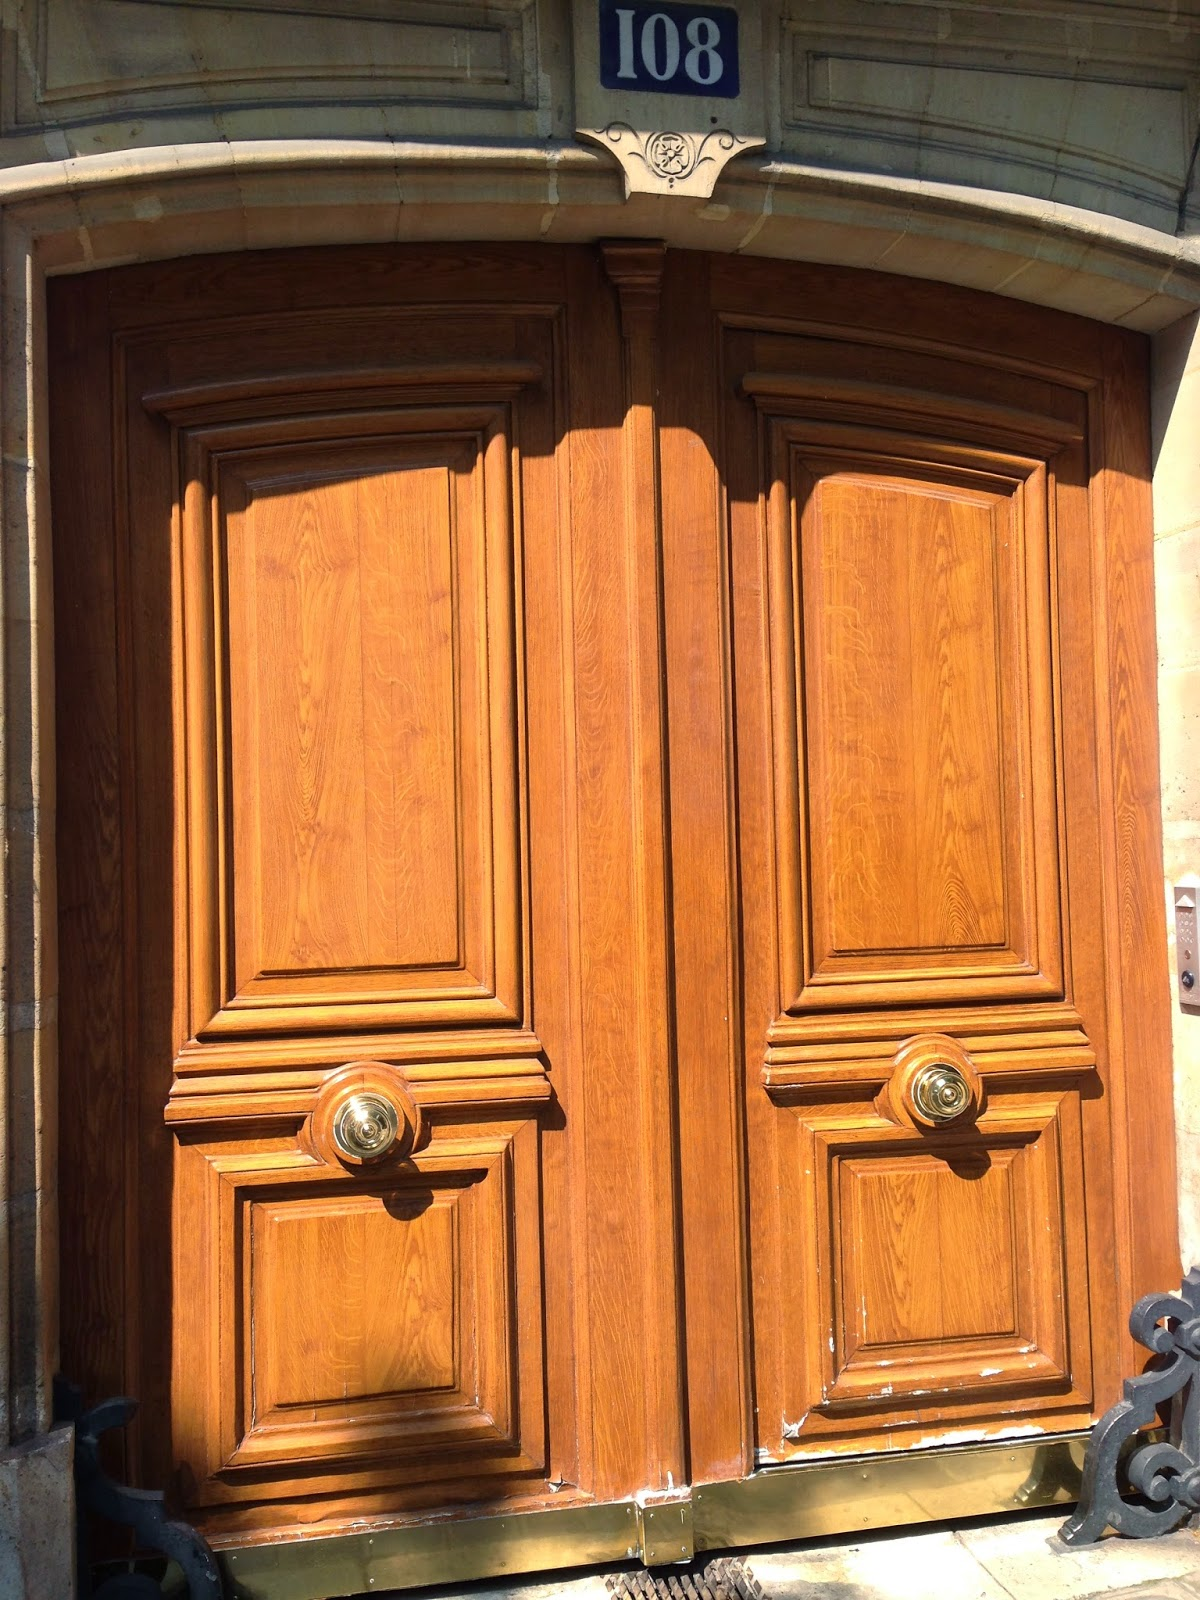 early 19th centruy doors, Paris